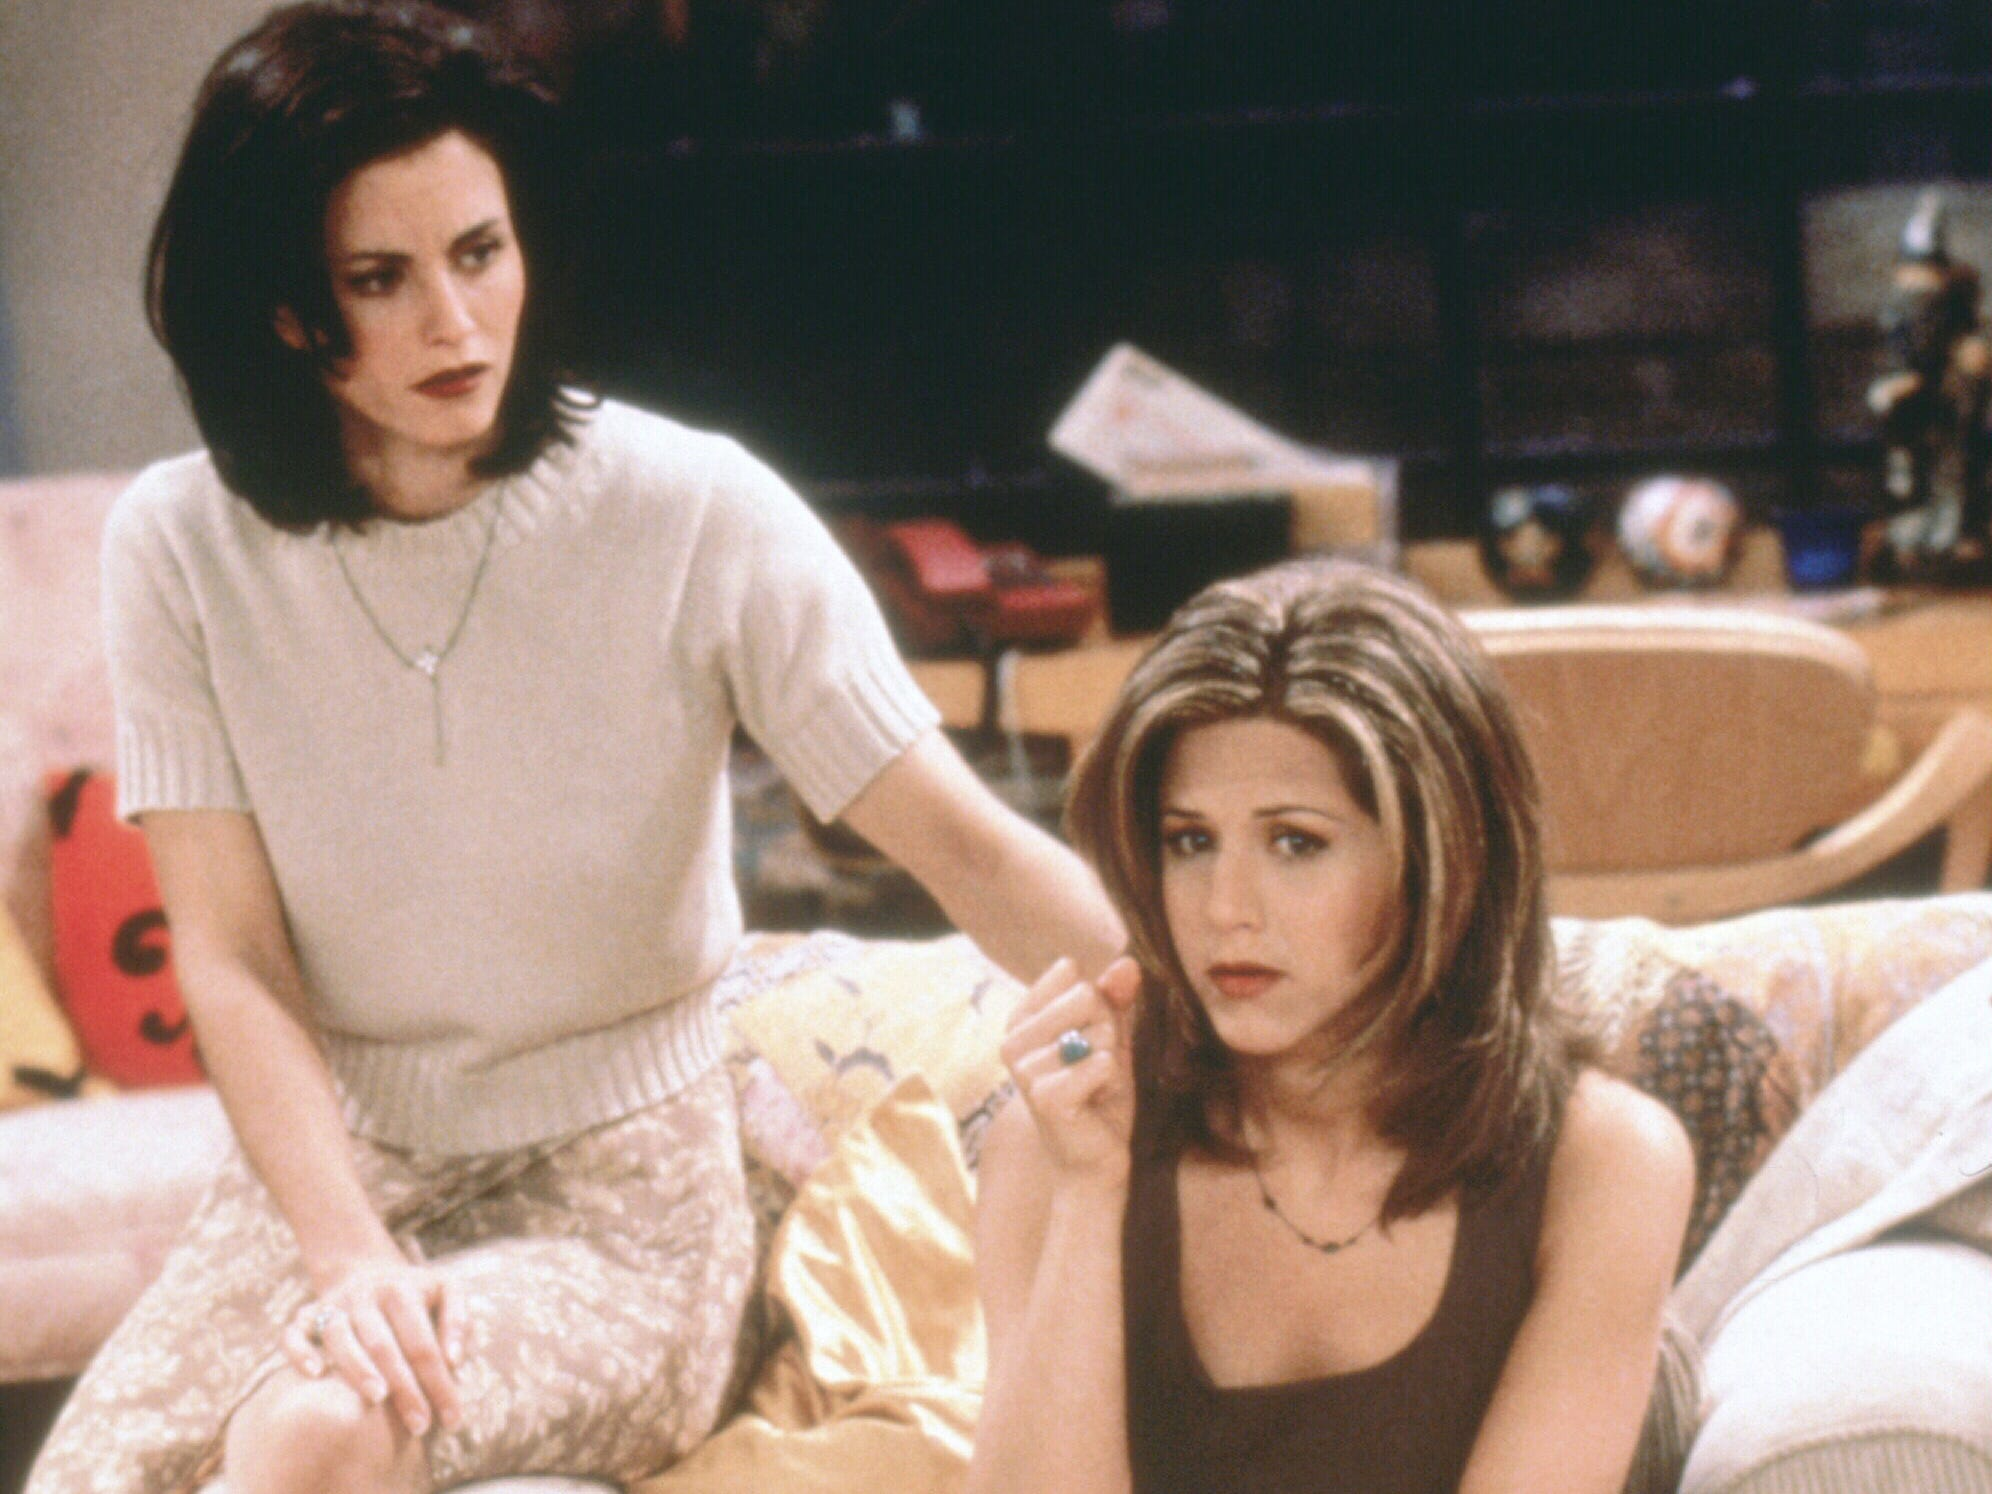 """By the show's second episode, shot months after the pilot, Aniston had gotten the """"Rachel,"""" one of the most popular haircuts of the 1990s."""